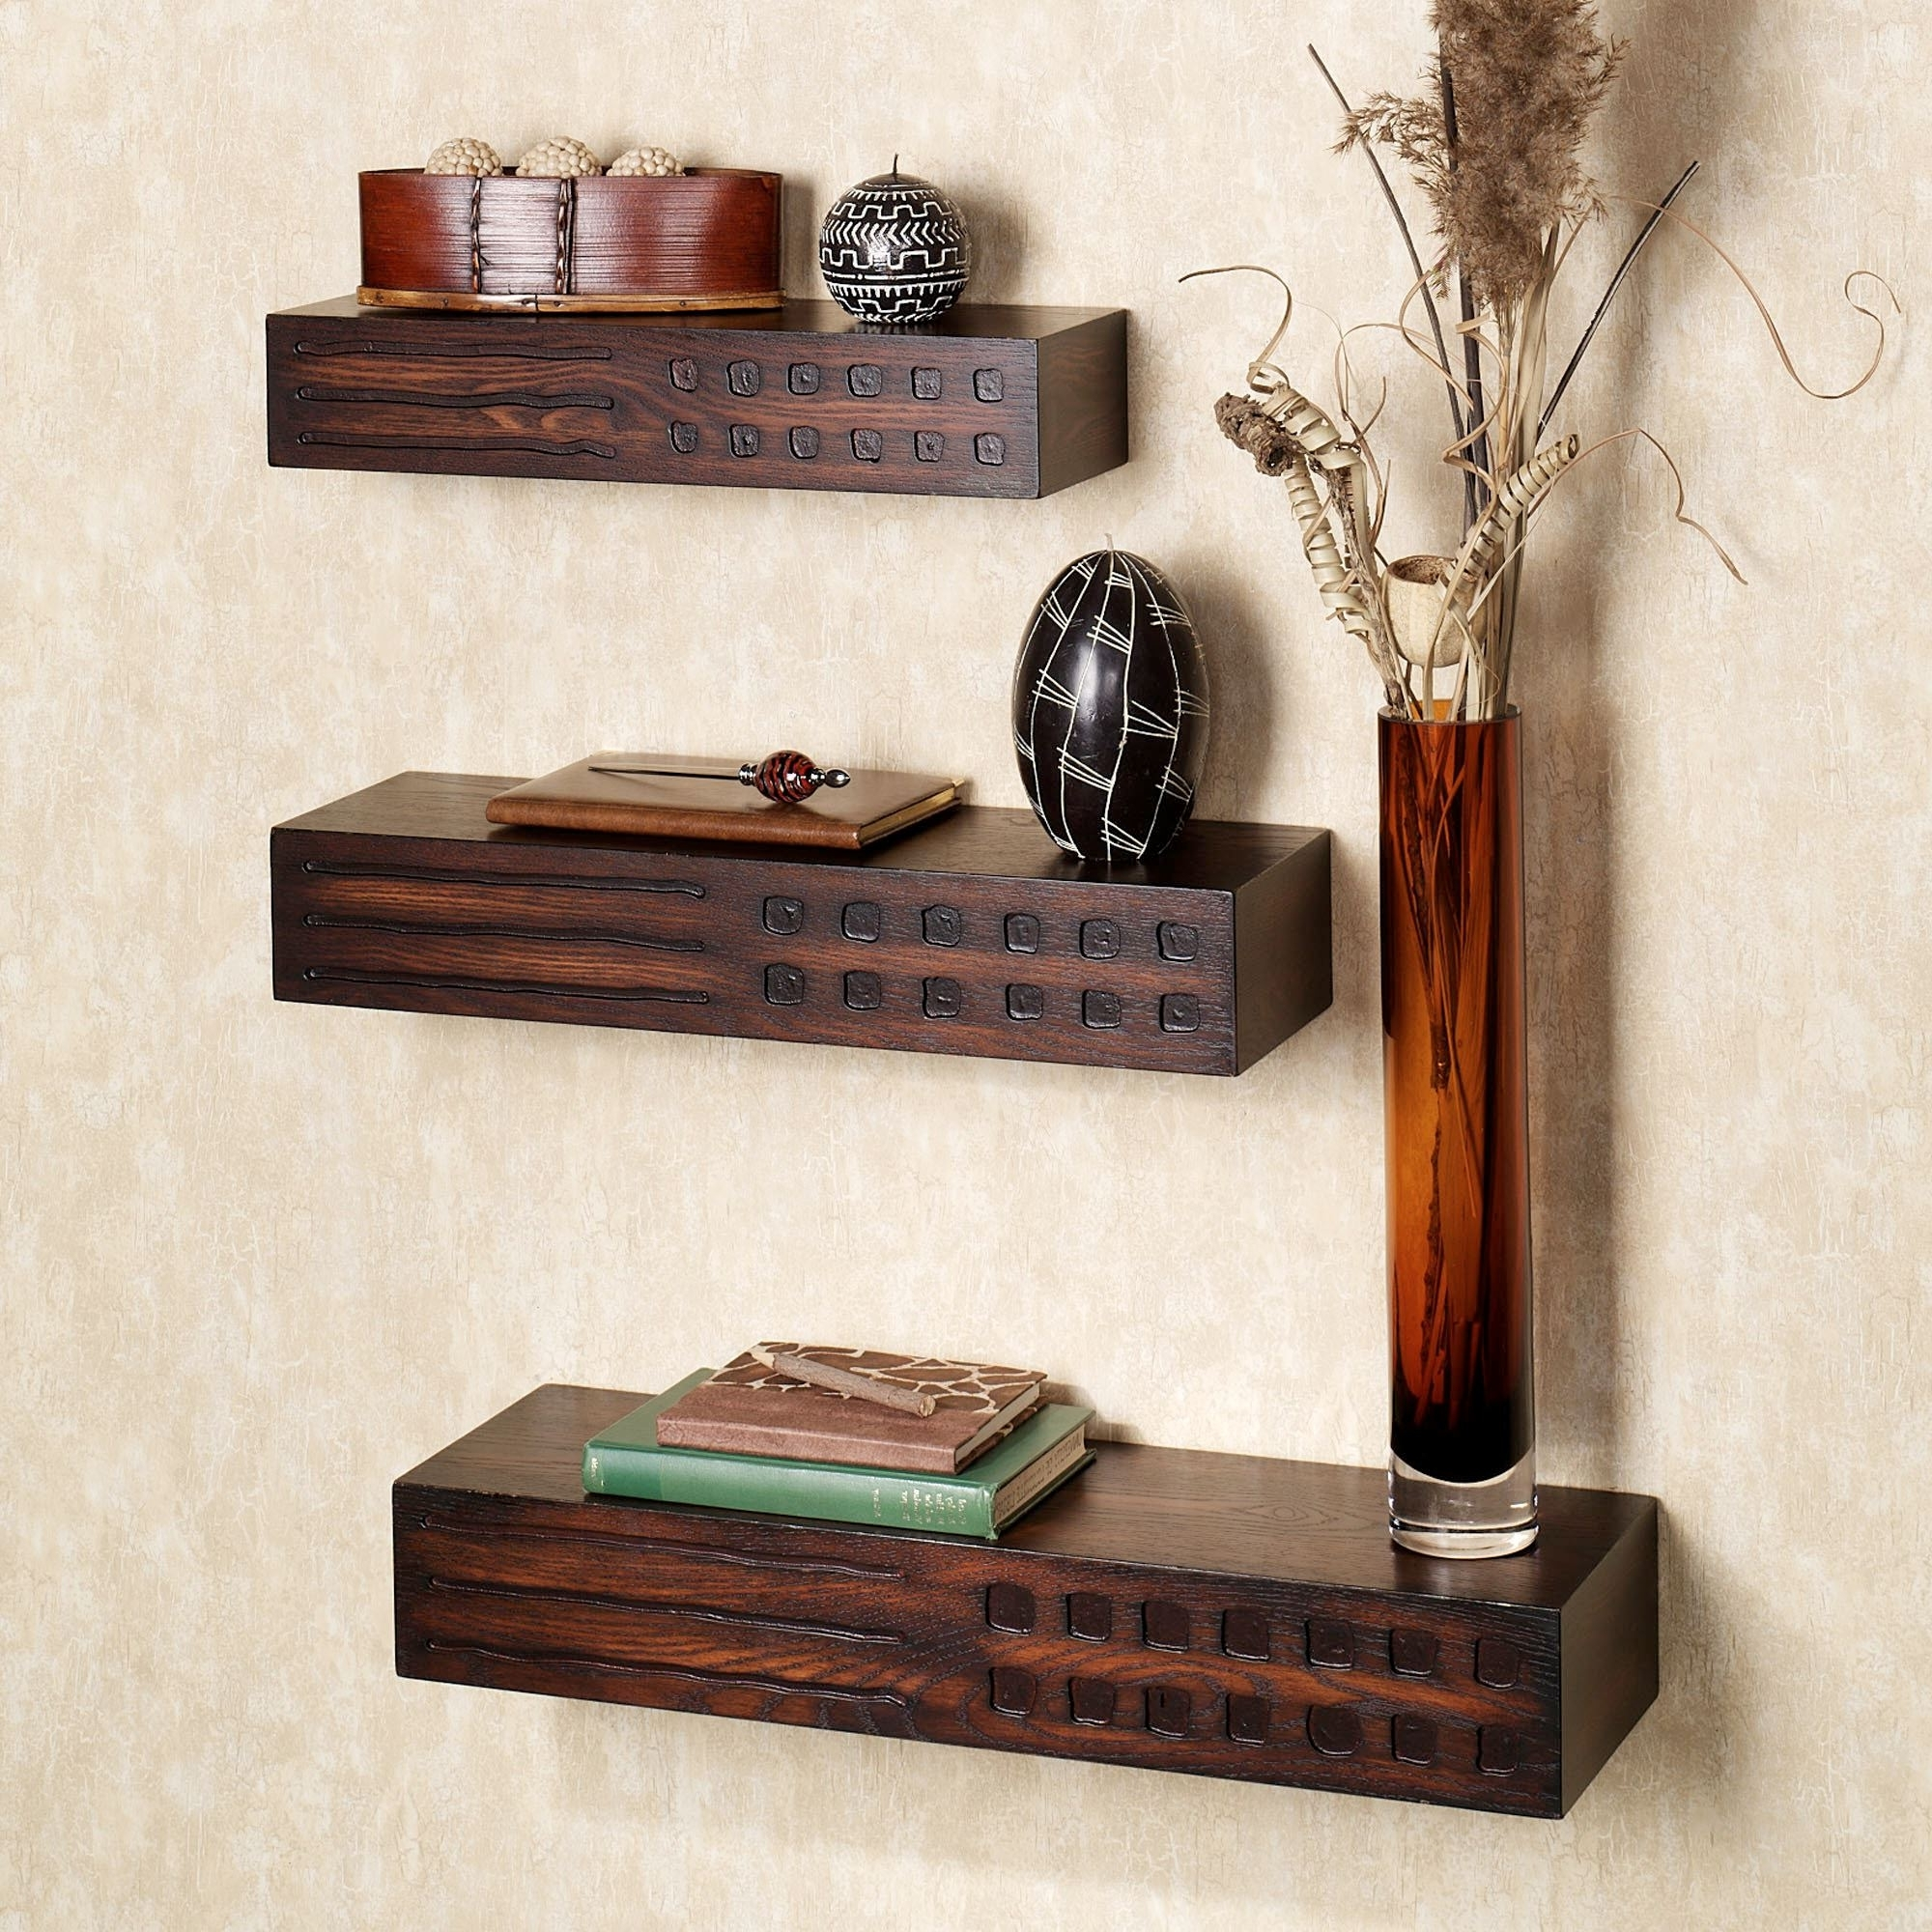 Trendy Wall Shelves Throughout Wagner Wall Ledge Shelves Set (View 7 of 15)